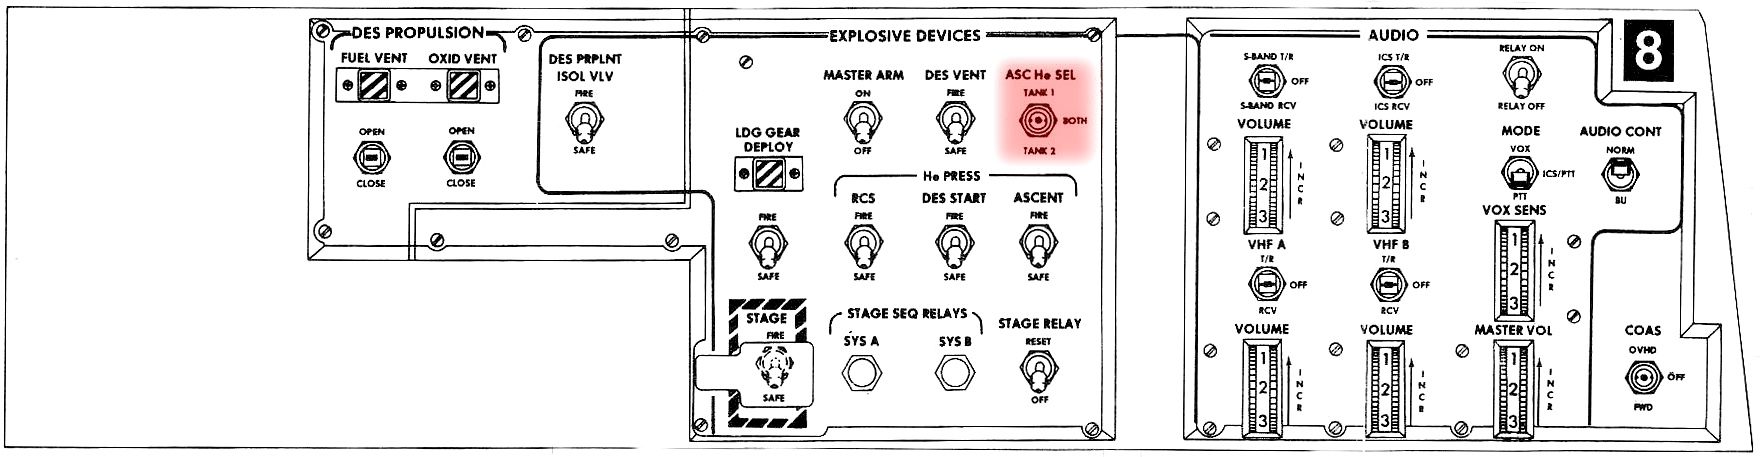 Apollo 10 Flight Journal Day 5 Part 20 A Surprise At Staging Ll Find Wiring Instructions For Using The Asc On Switches Including As There Are No Problems Crew Will Put This Switch In Both Position